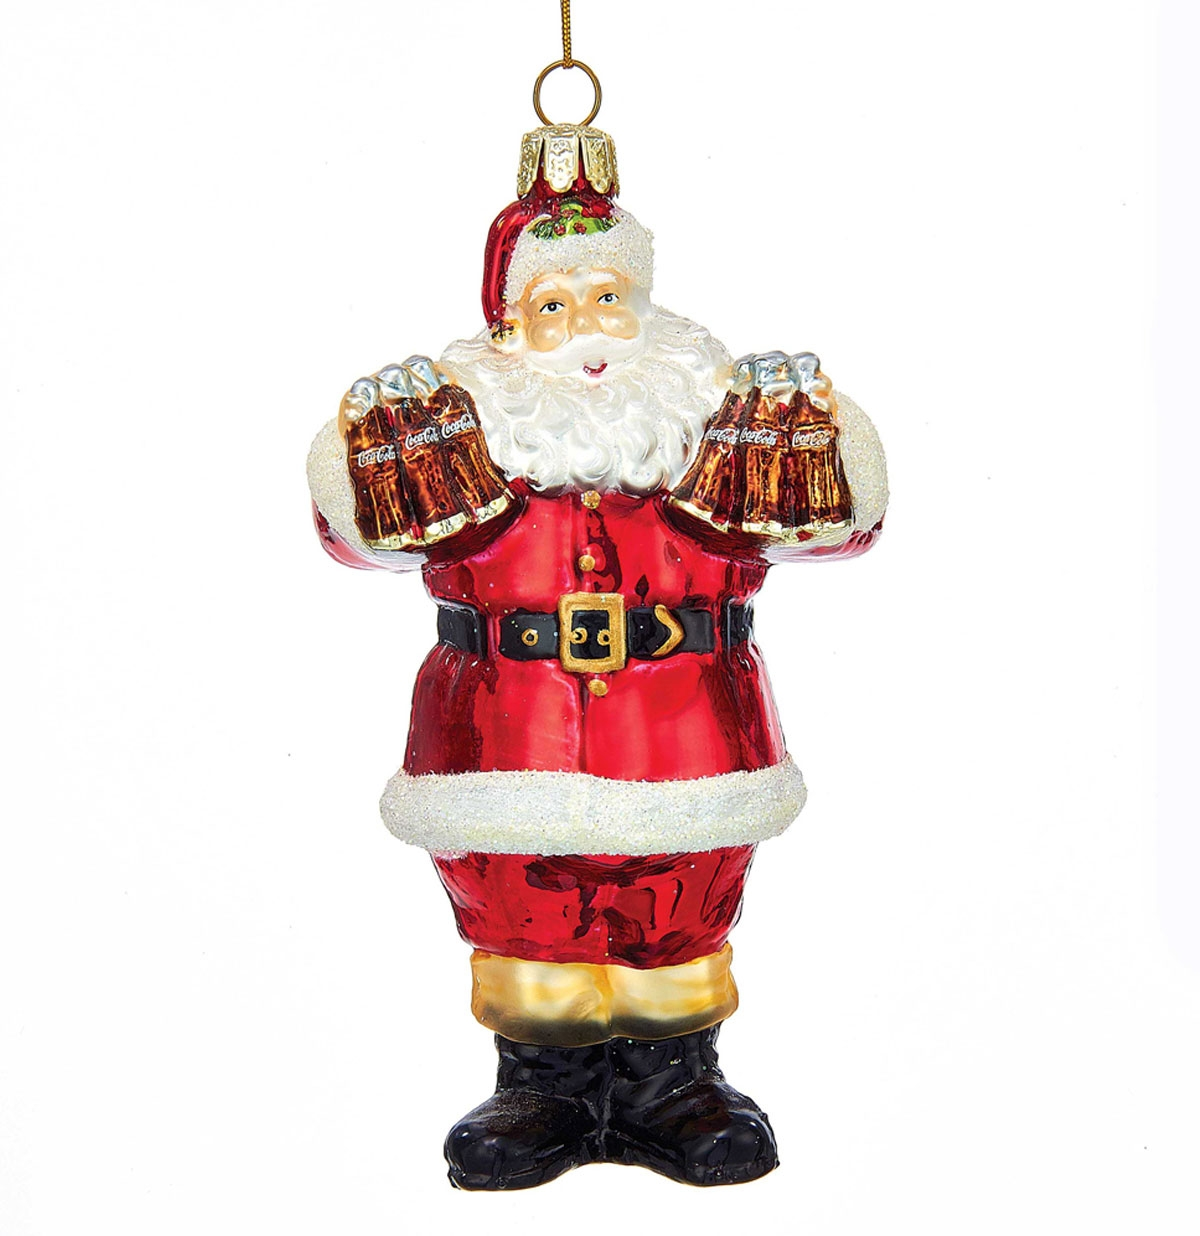 Coca-Cola Glass Santa Claus Christmas Ornament Collectibles